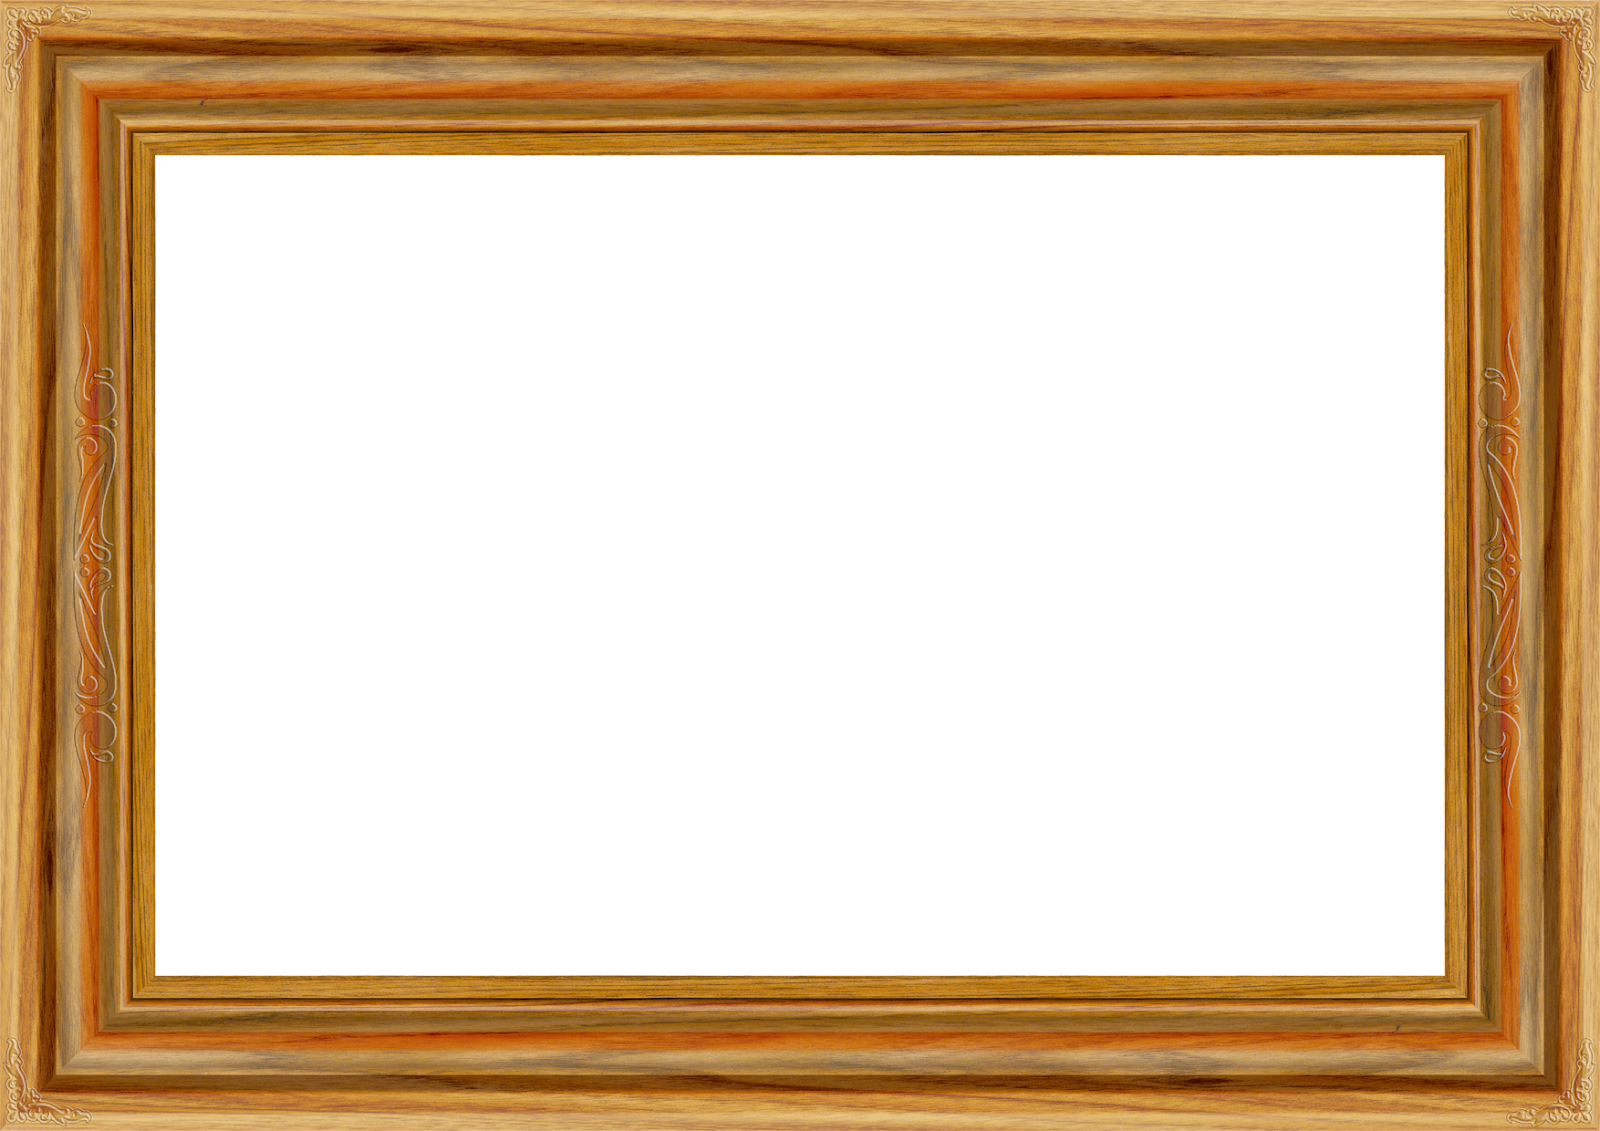 Decoration ideas sided tag. Wood frame png